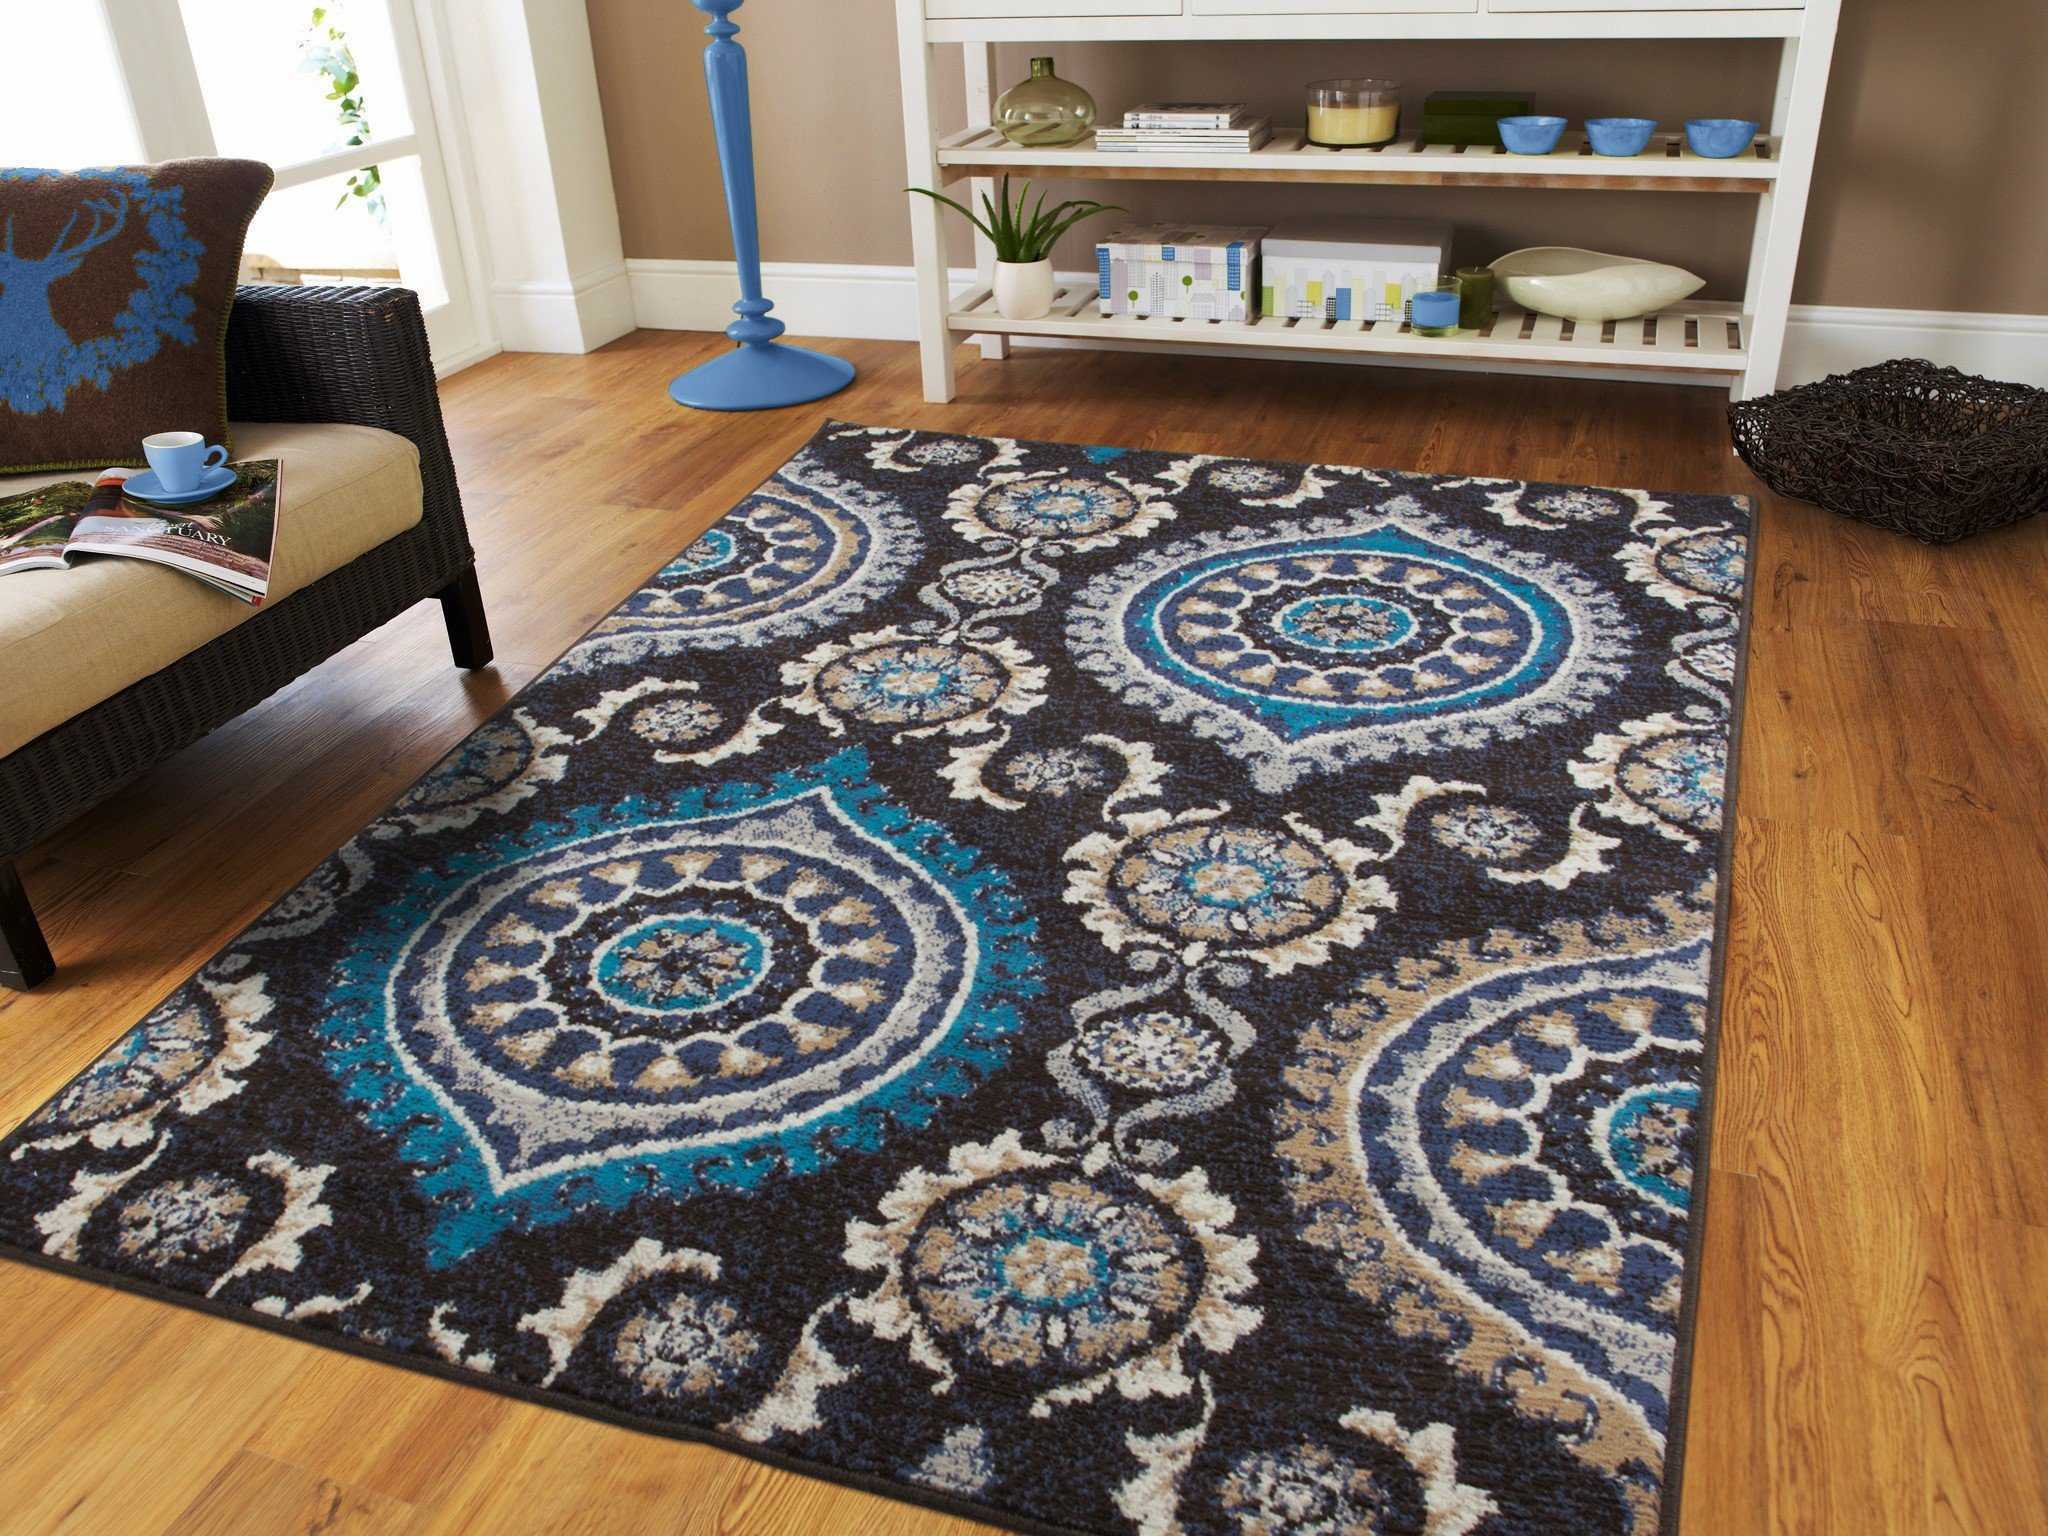 Modern Black Rug For Living Room 2x3 Small Rugs for Bedroom 2x4 Entrance Rug Washable Blue Gray Navy Beige Ivory Cheap Rug Sets